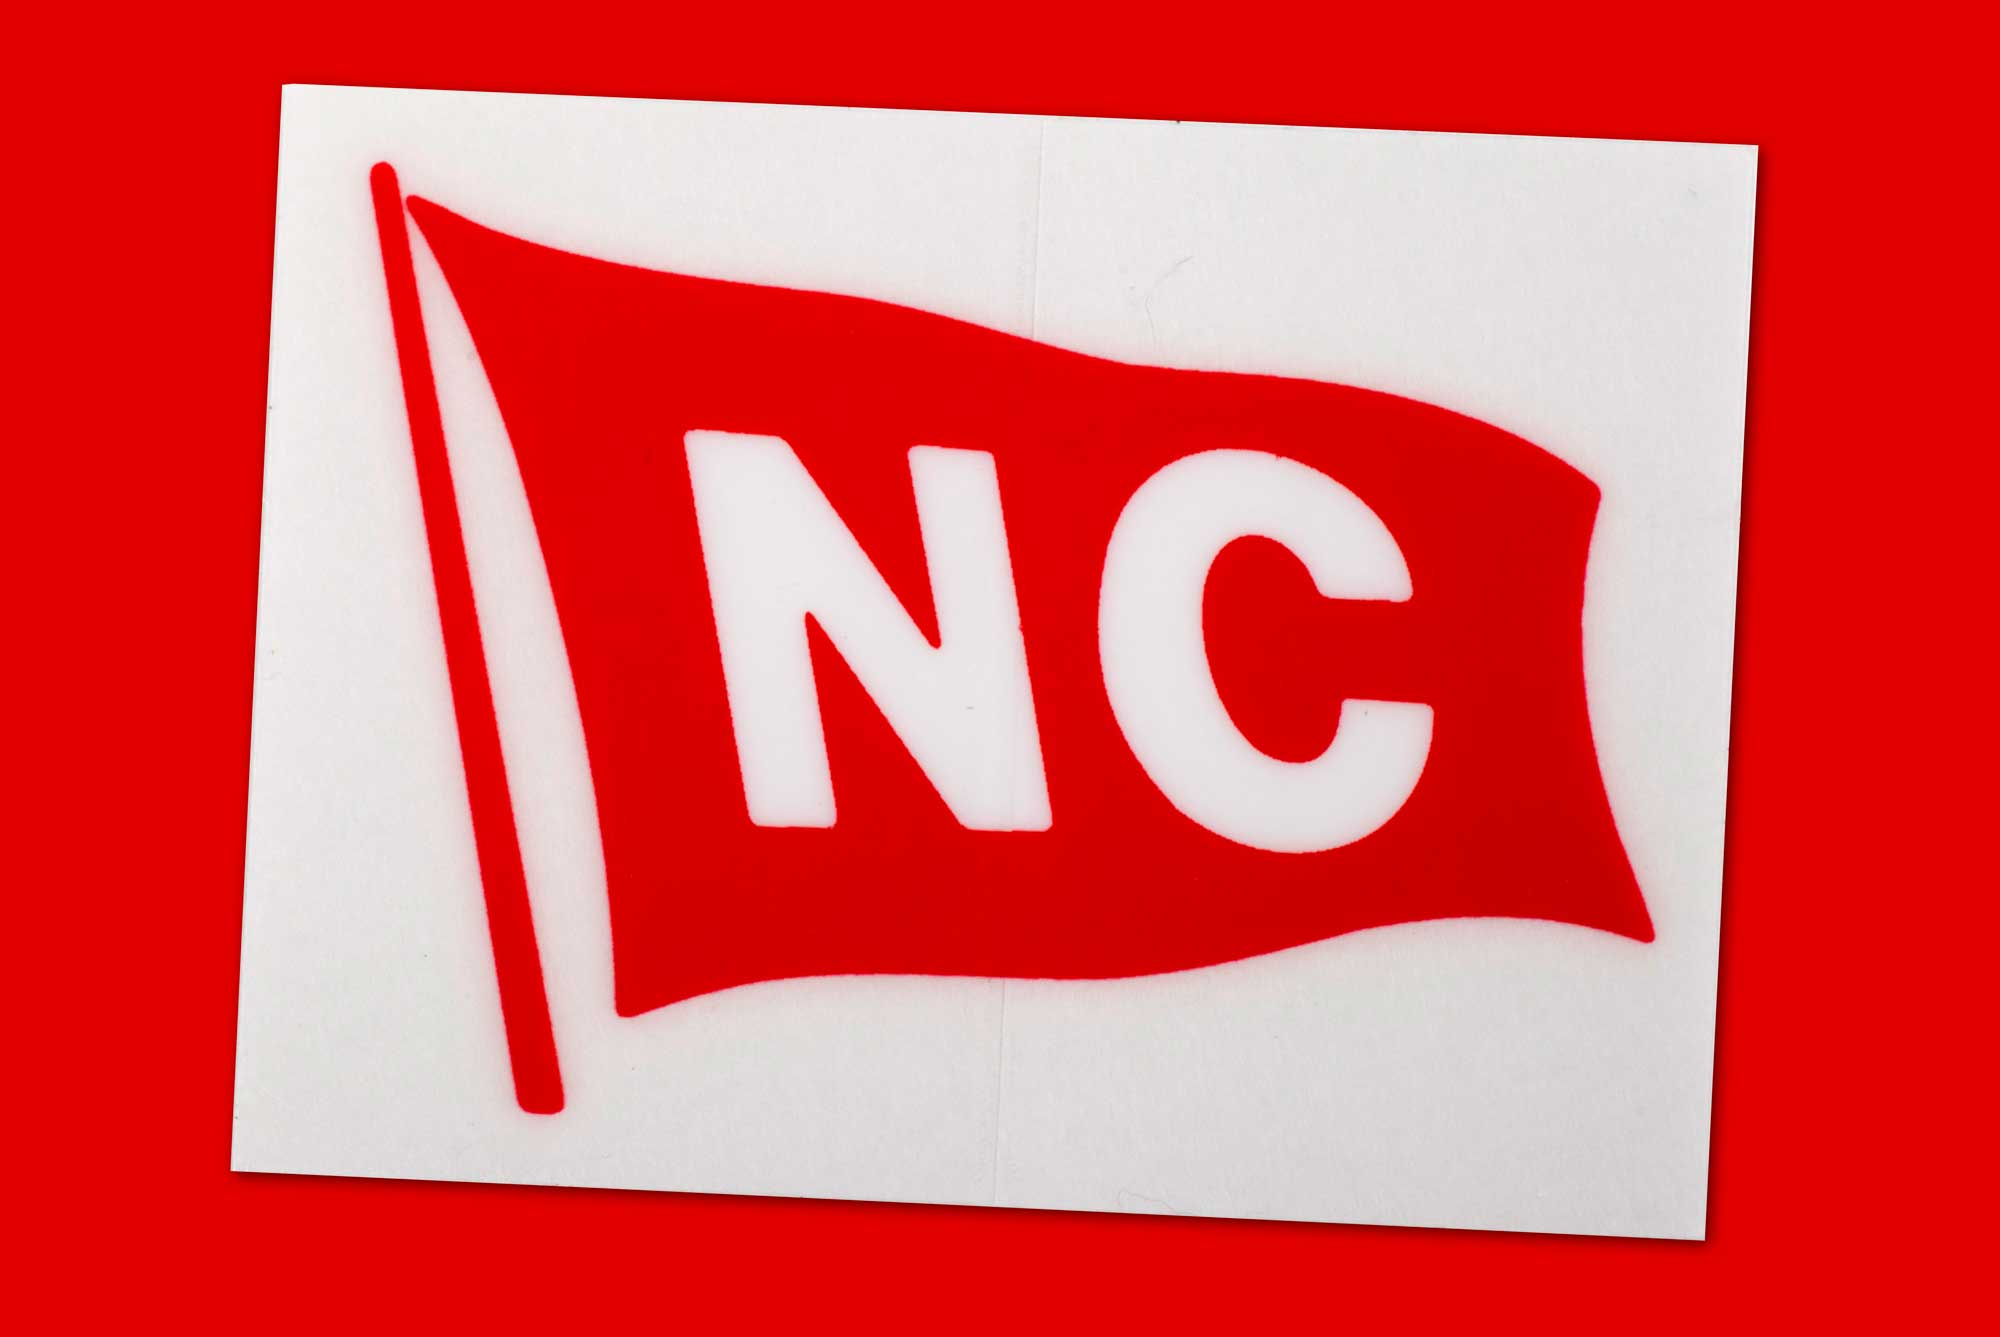 Decal-NC-Machinery-rectangle-red-white